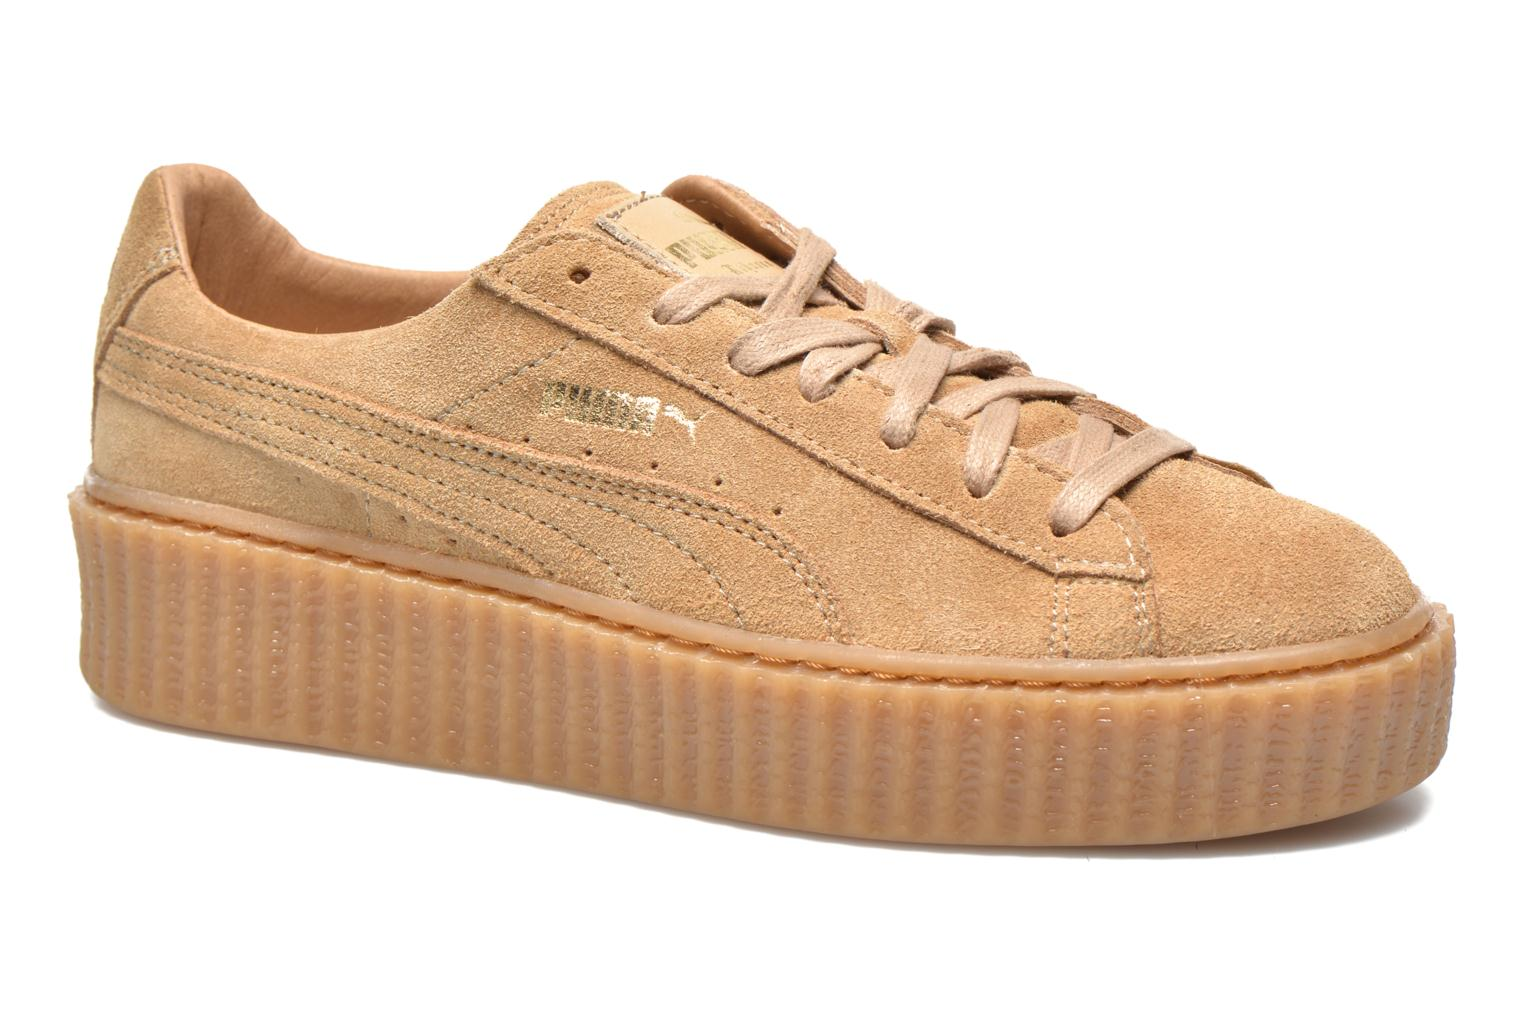 WNS Suede Creepers Gum/Gum